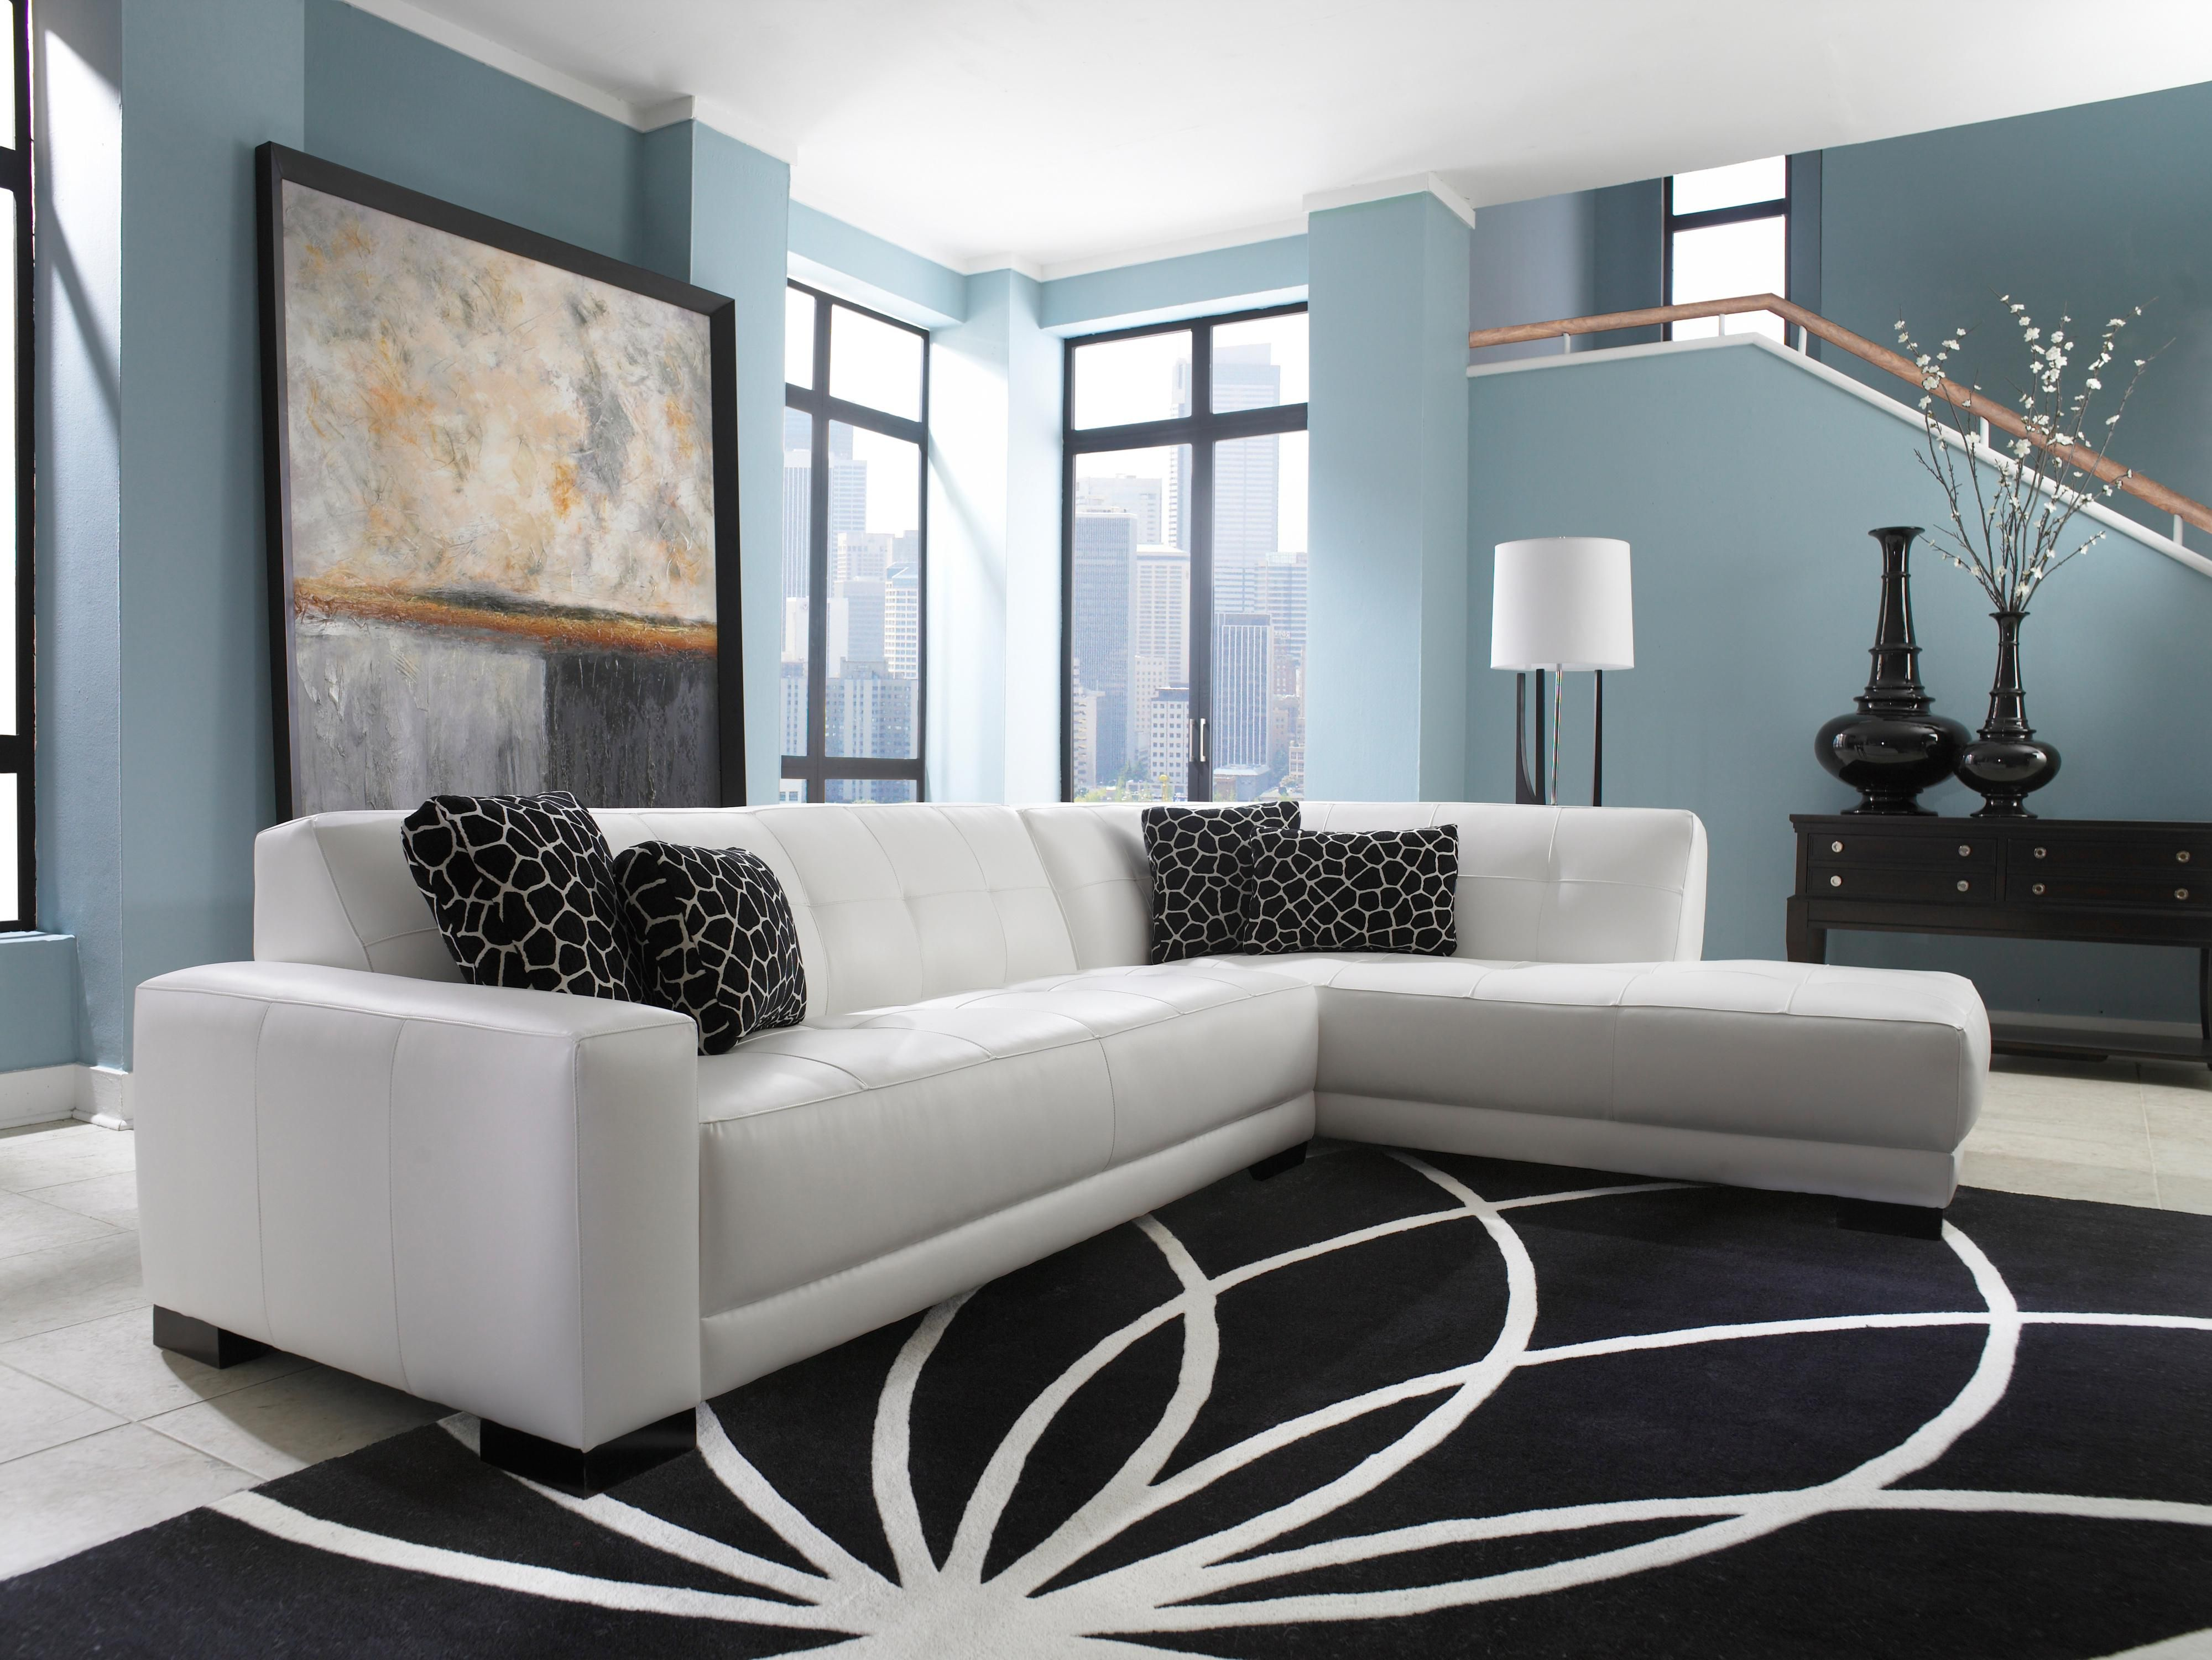 broyhill sofa nebraska furniture mart sleeper sectional for small spaces color forecasters report that the european black and white